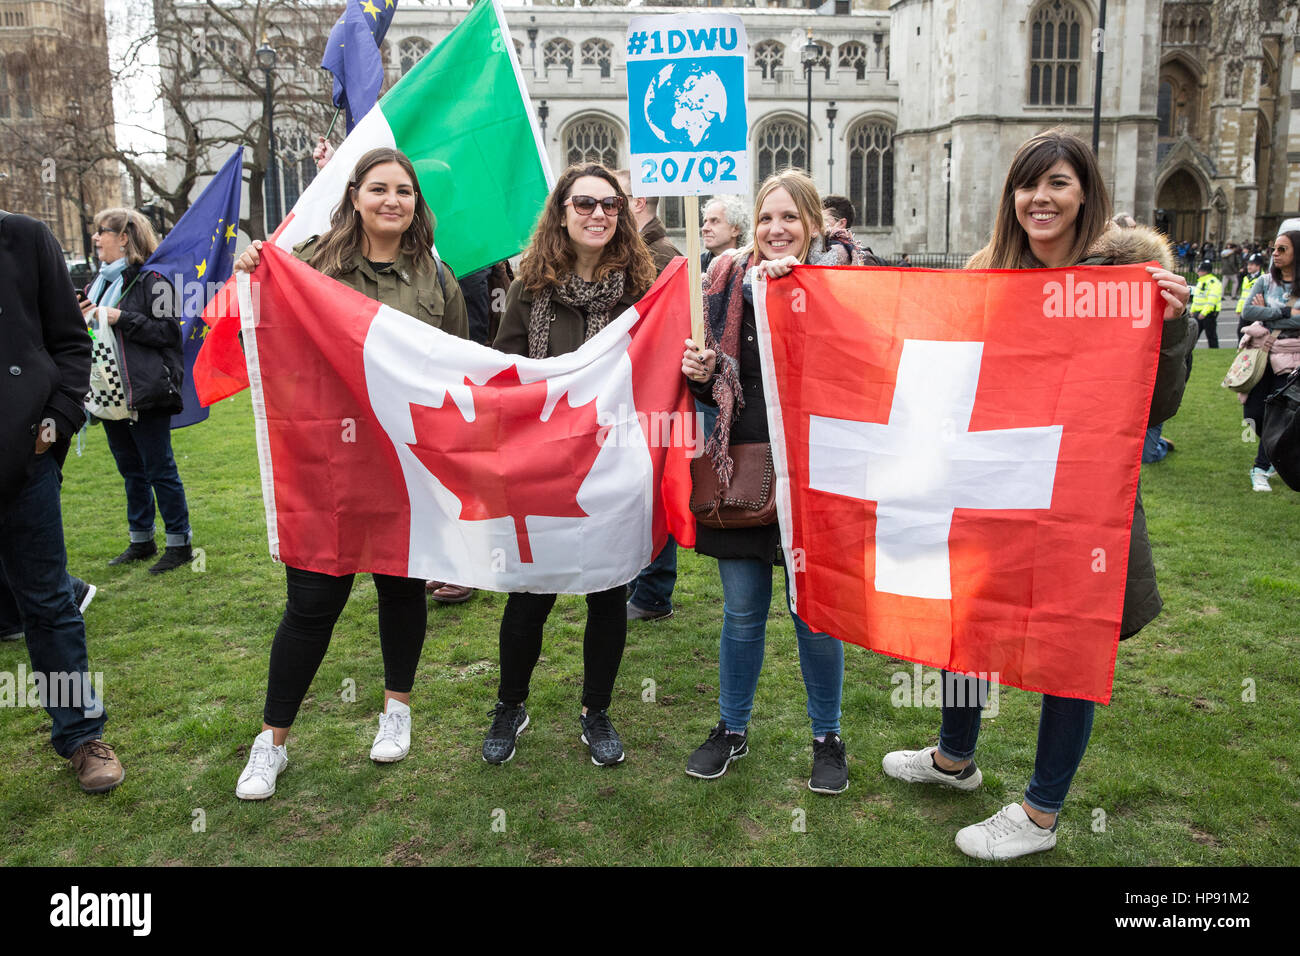 London, UK. 20th February, 2017. Nationals of countries from around the world take part in a 'flagmob' for One Day Stock Photo